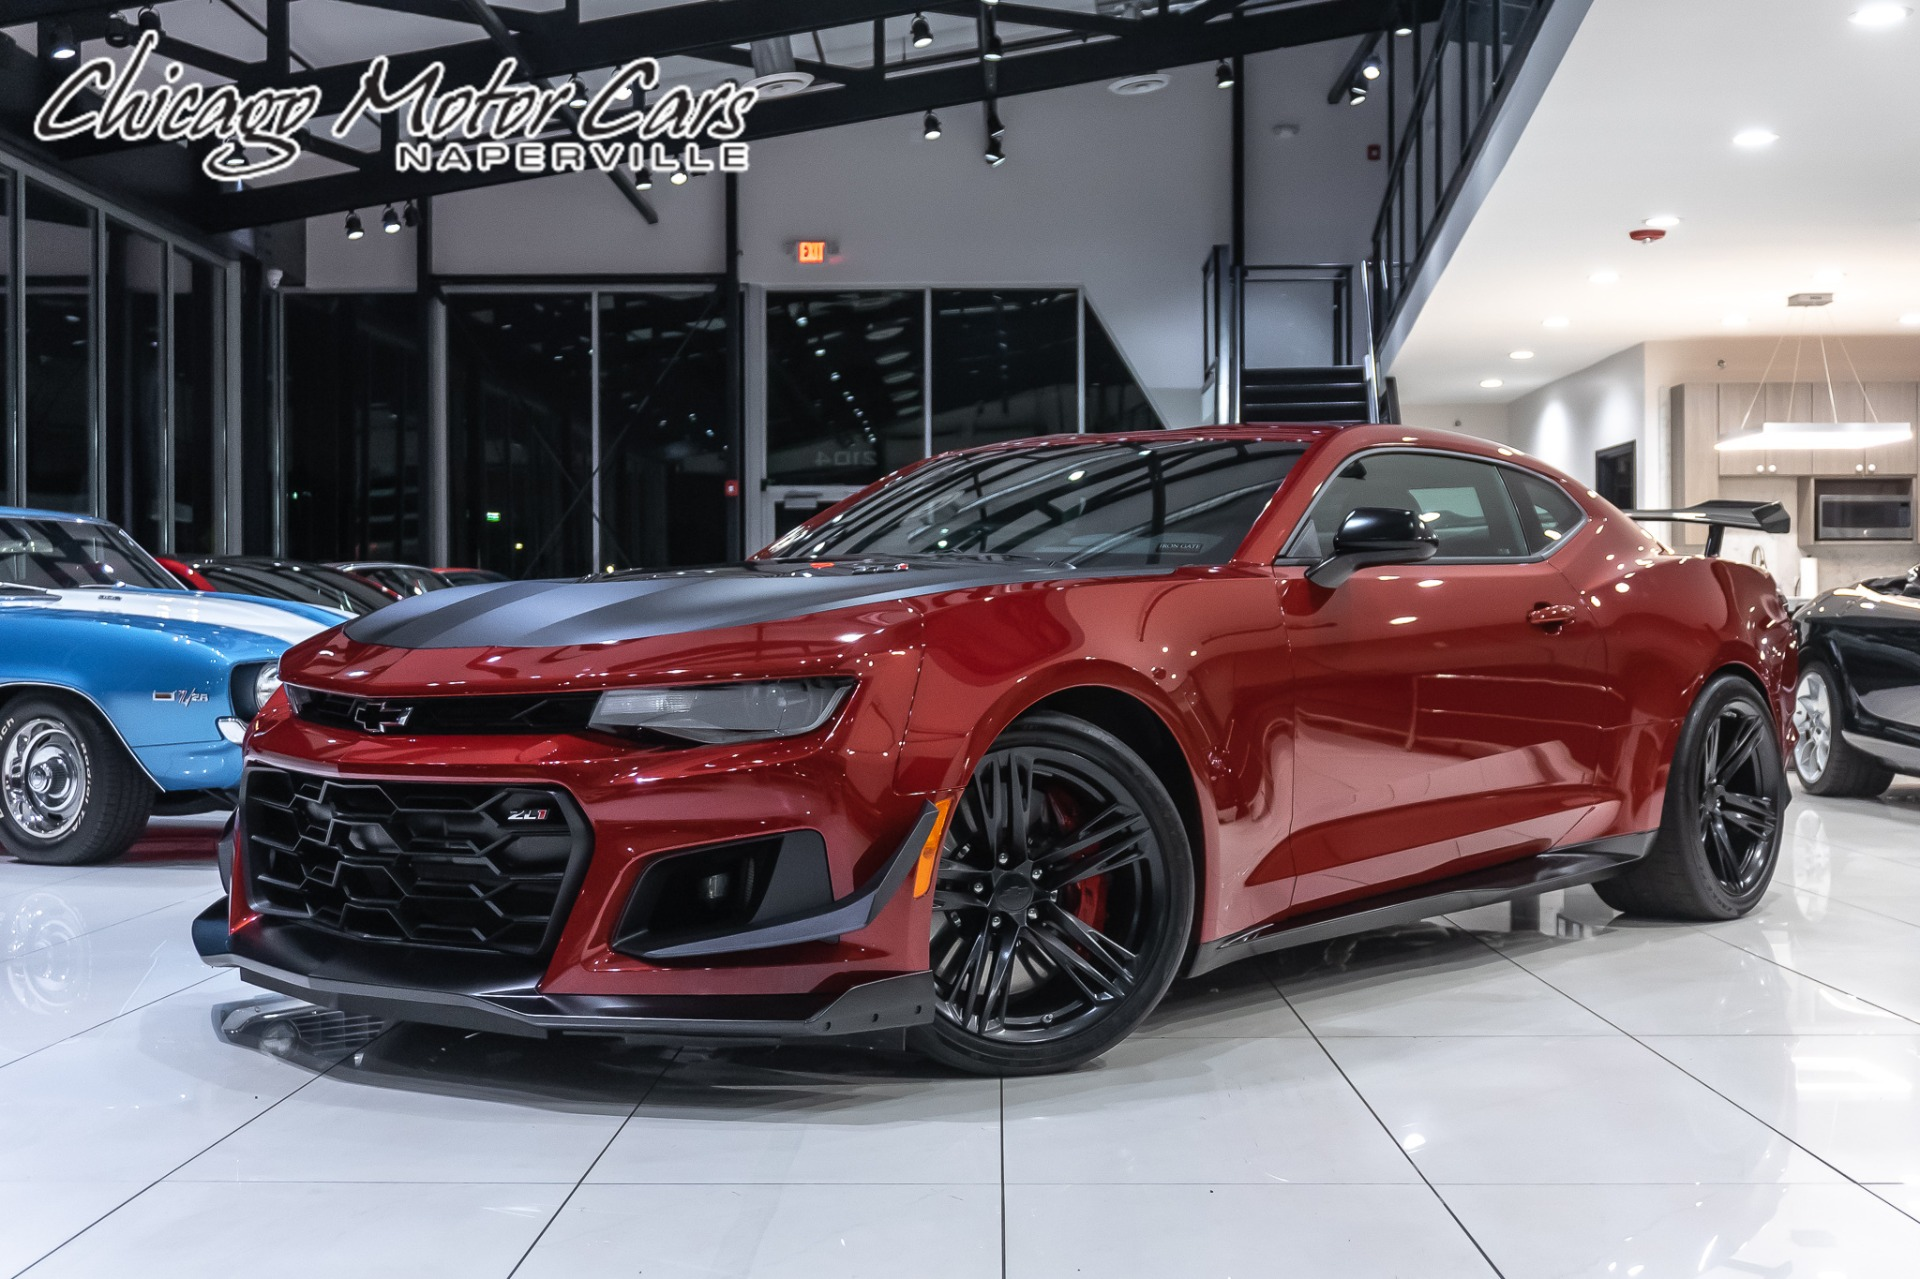 Used 2019 Chevrolet Camaro Zl1 1le Only 161 Miles For Sale Special Pricing Chicago Motor Cars Stock 17351